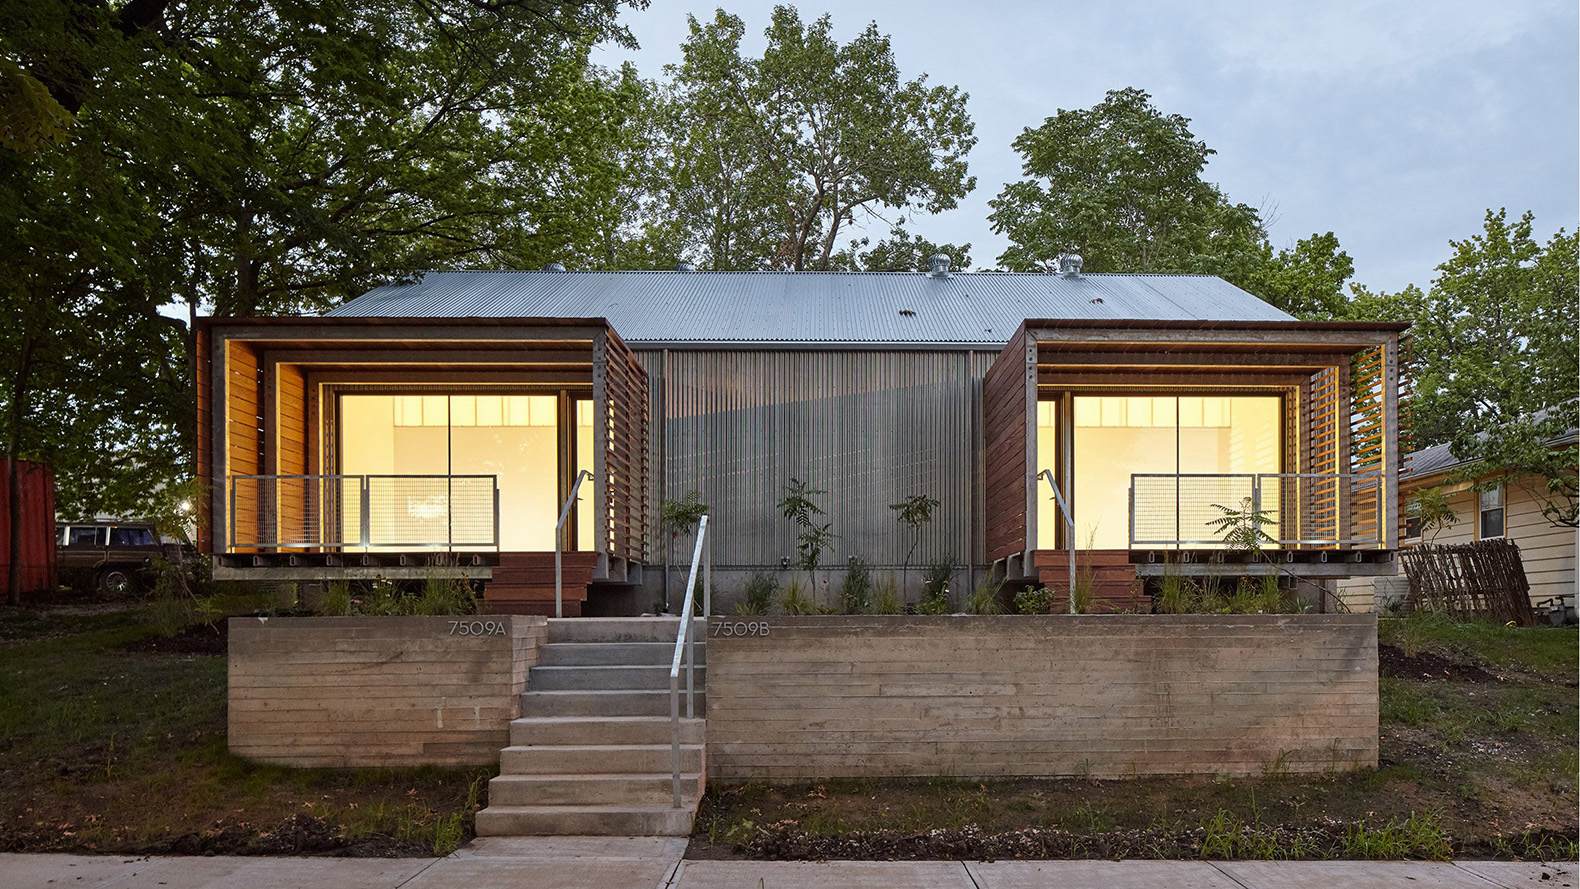 hight resolution of kansas state students built this charming affordable home for low income families